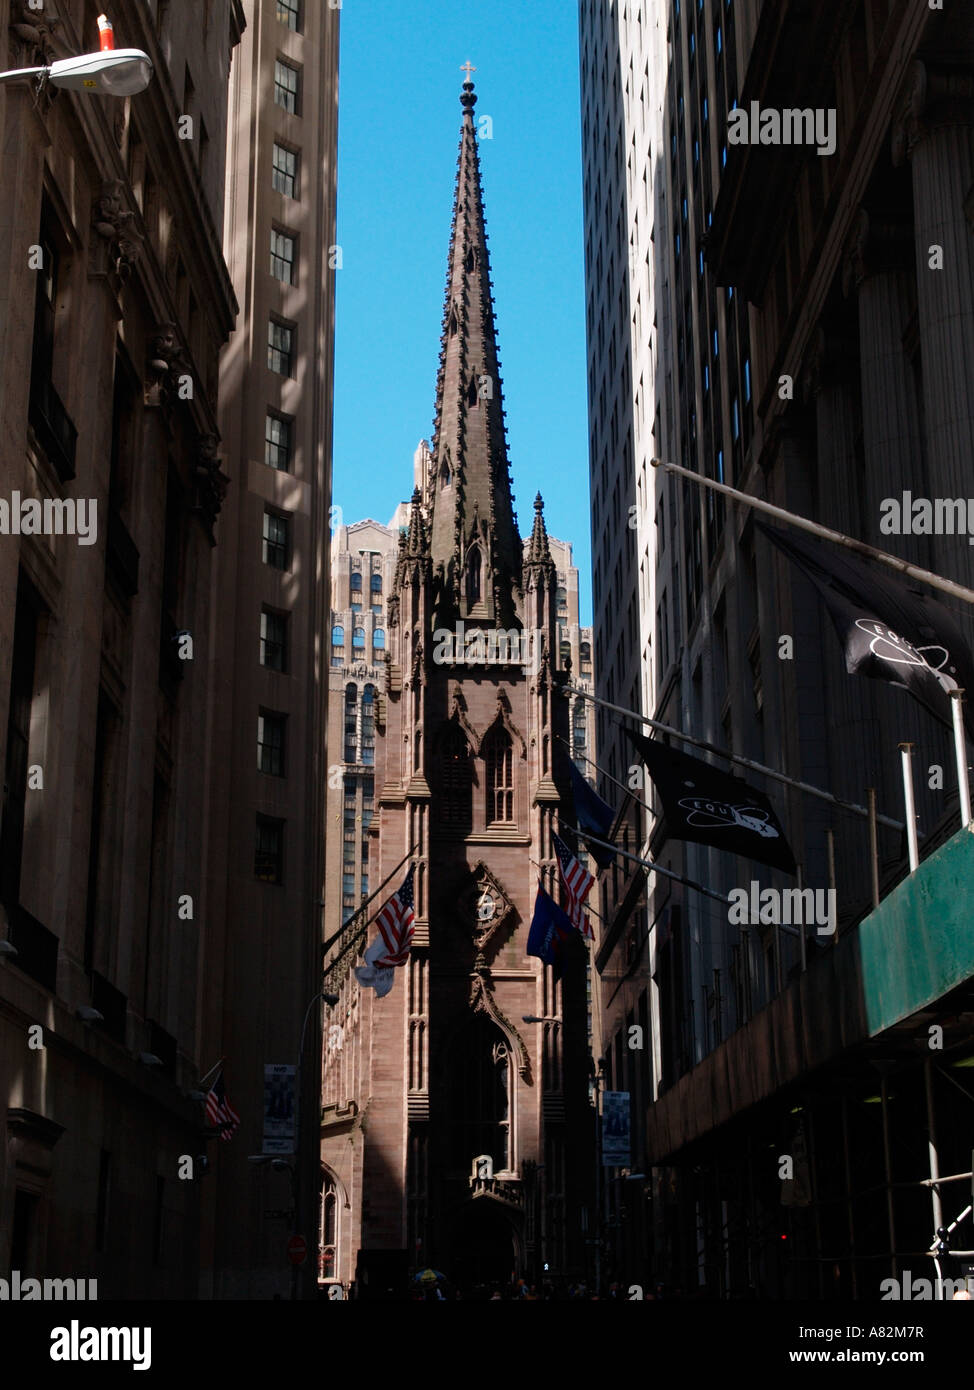 the evangelical church seen from Wall Street - Stock Image